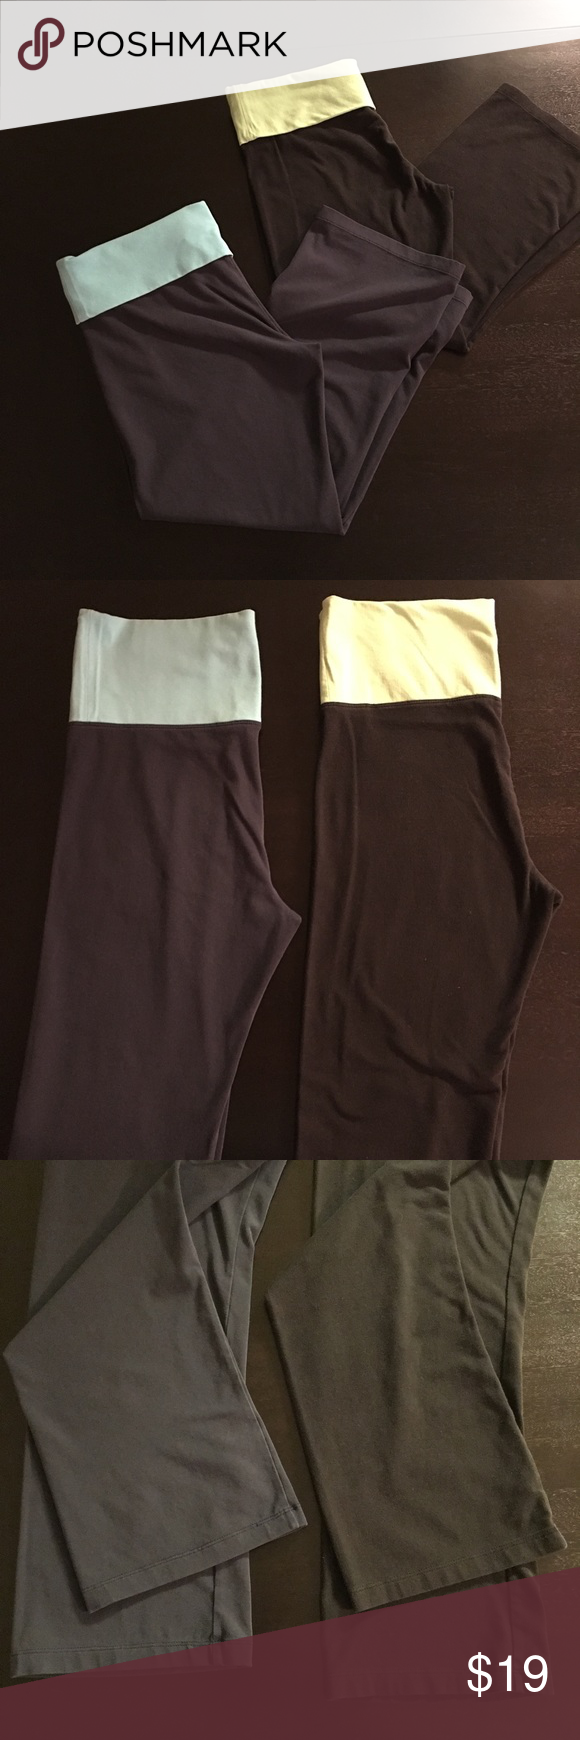 """2 Pairs - Victoria's Secret Yoga Crops Two pairs of Victoria's Secret yoga crop pants. One pair is navy with a light blue fold over waist band and the other is black with a lime green fold over waist band. Both are women's size small and 87% cotton/13% Lycra spandex. Inseam is 25"""". Victoria's Secret Pants Track Pants & Joggers"""